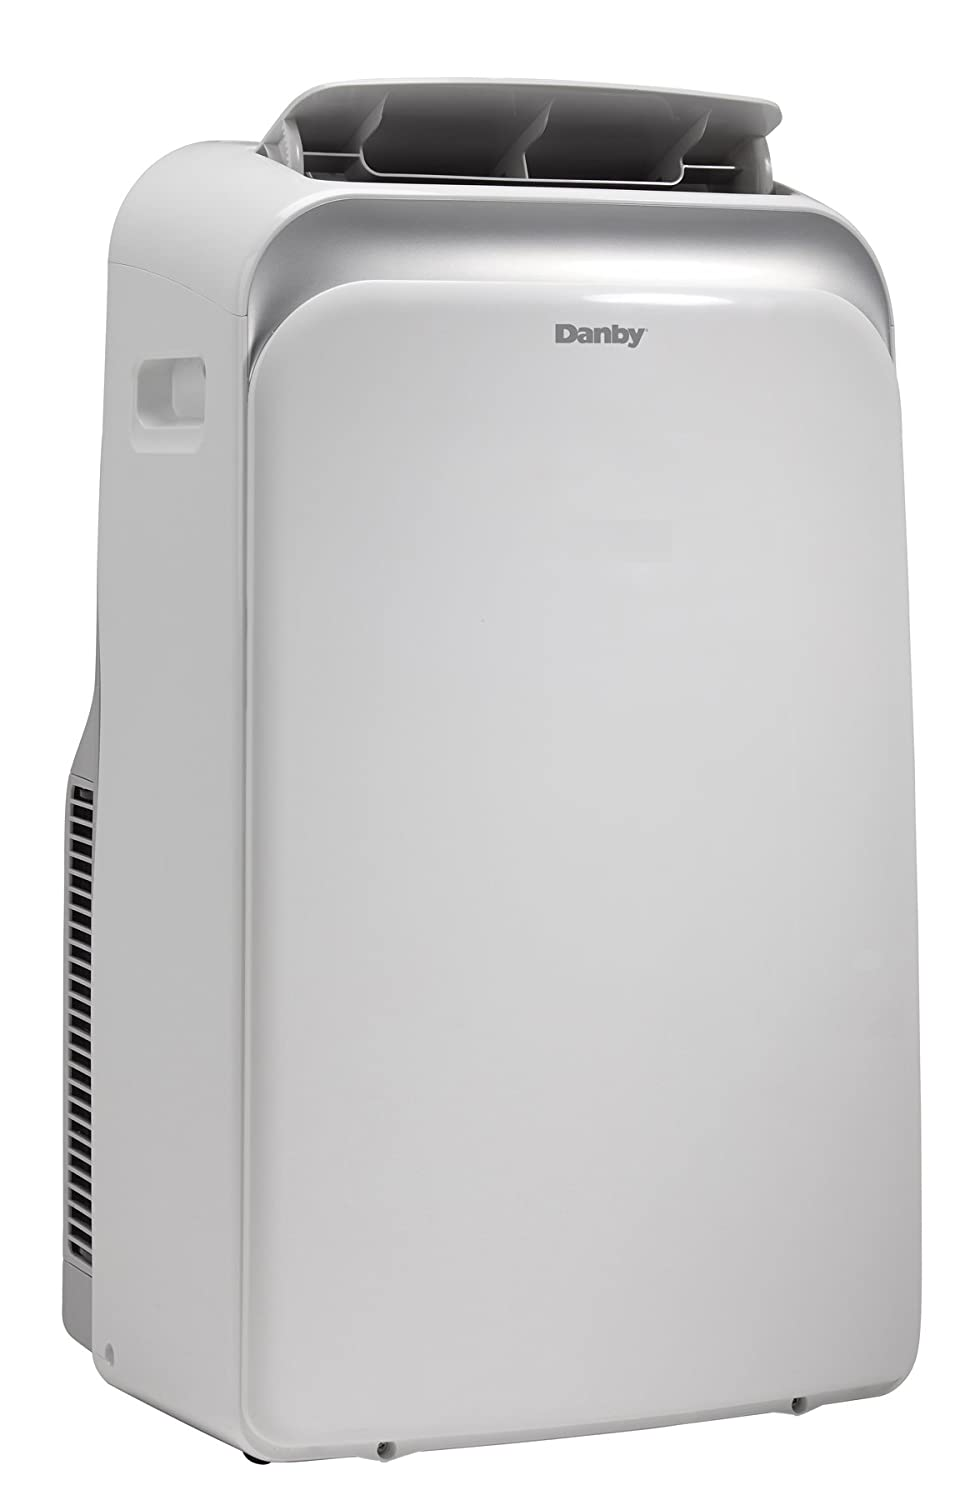 Danby 12000 Btu 3 In 1 Portable Air Conditioner 12 000 Btu